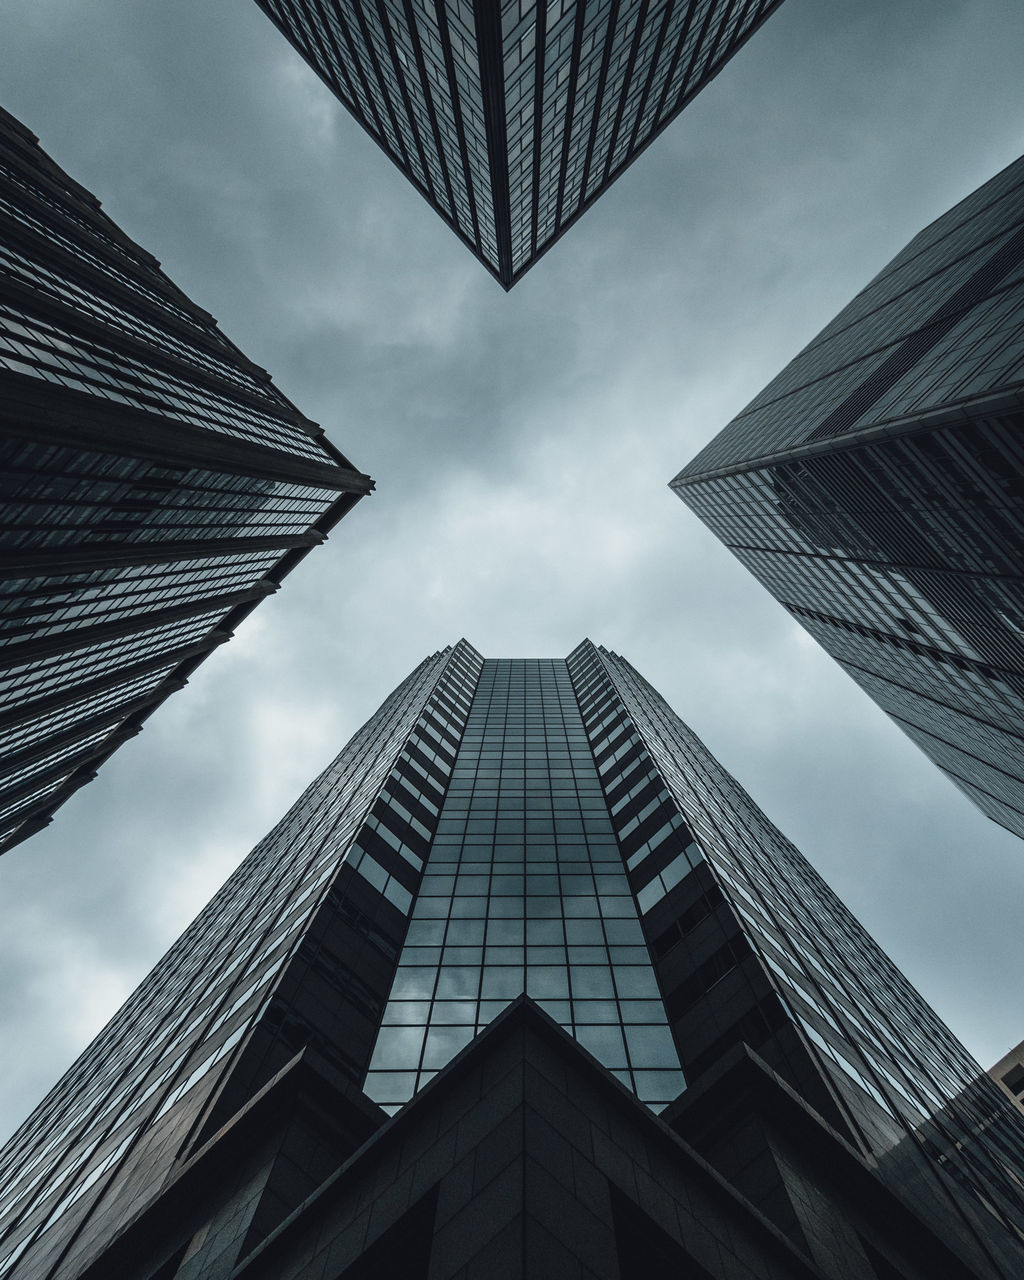 architecture, built structure, building exterior, low angle view, skyscraper, sky, modern, tall - high, directly below, tower, city, day, tall, outdoors, no people, corporate business, cloud - sky, office park